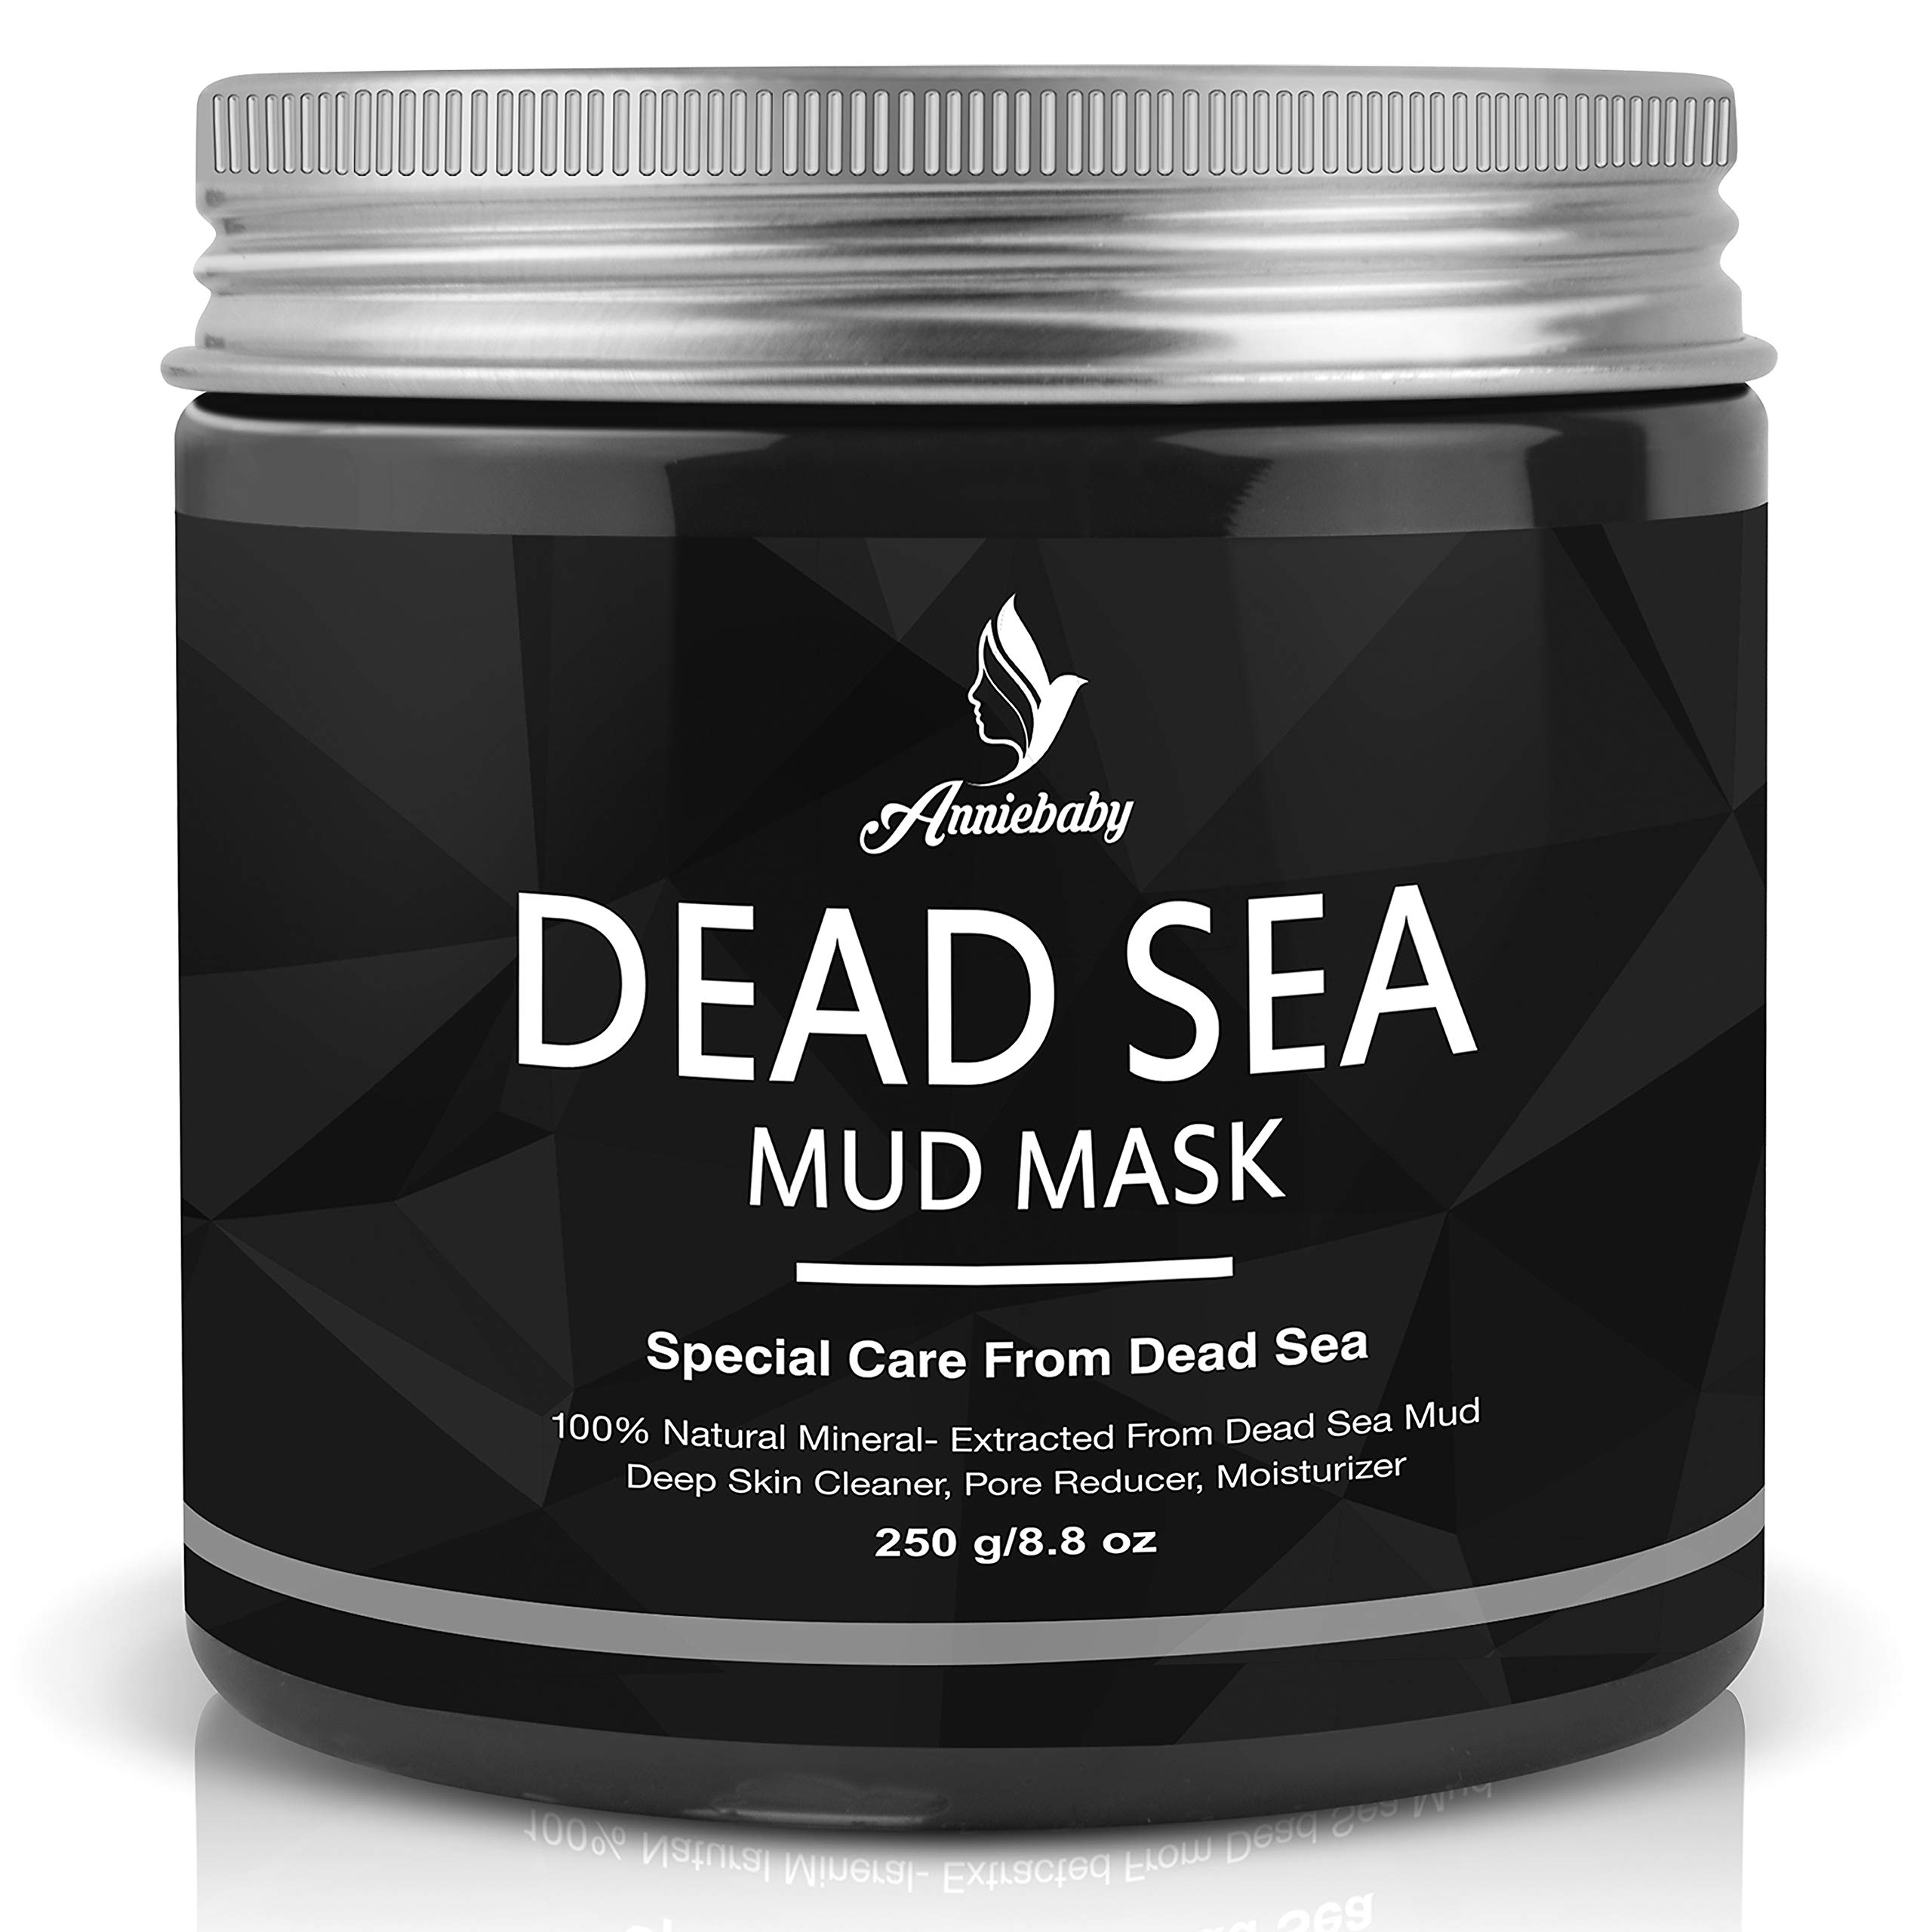 Dead Sea Mud Facial Mask-Spa Exfoliating Mask for Face Body by Anniebaby-Skin Deep Clean moisturize Treatment, Reduces Acne Wrinkles, Blackhead Remover, Pore Minimizer for Men and Women